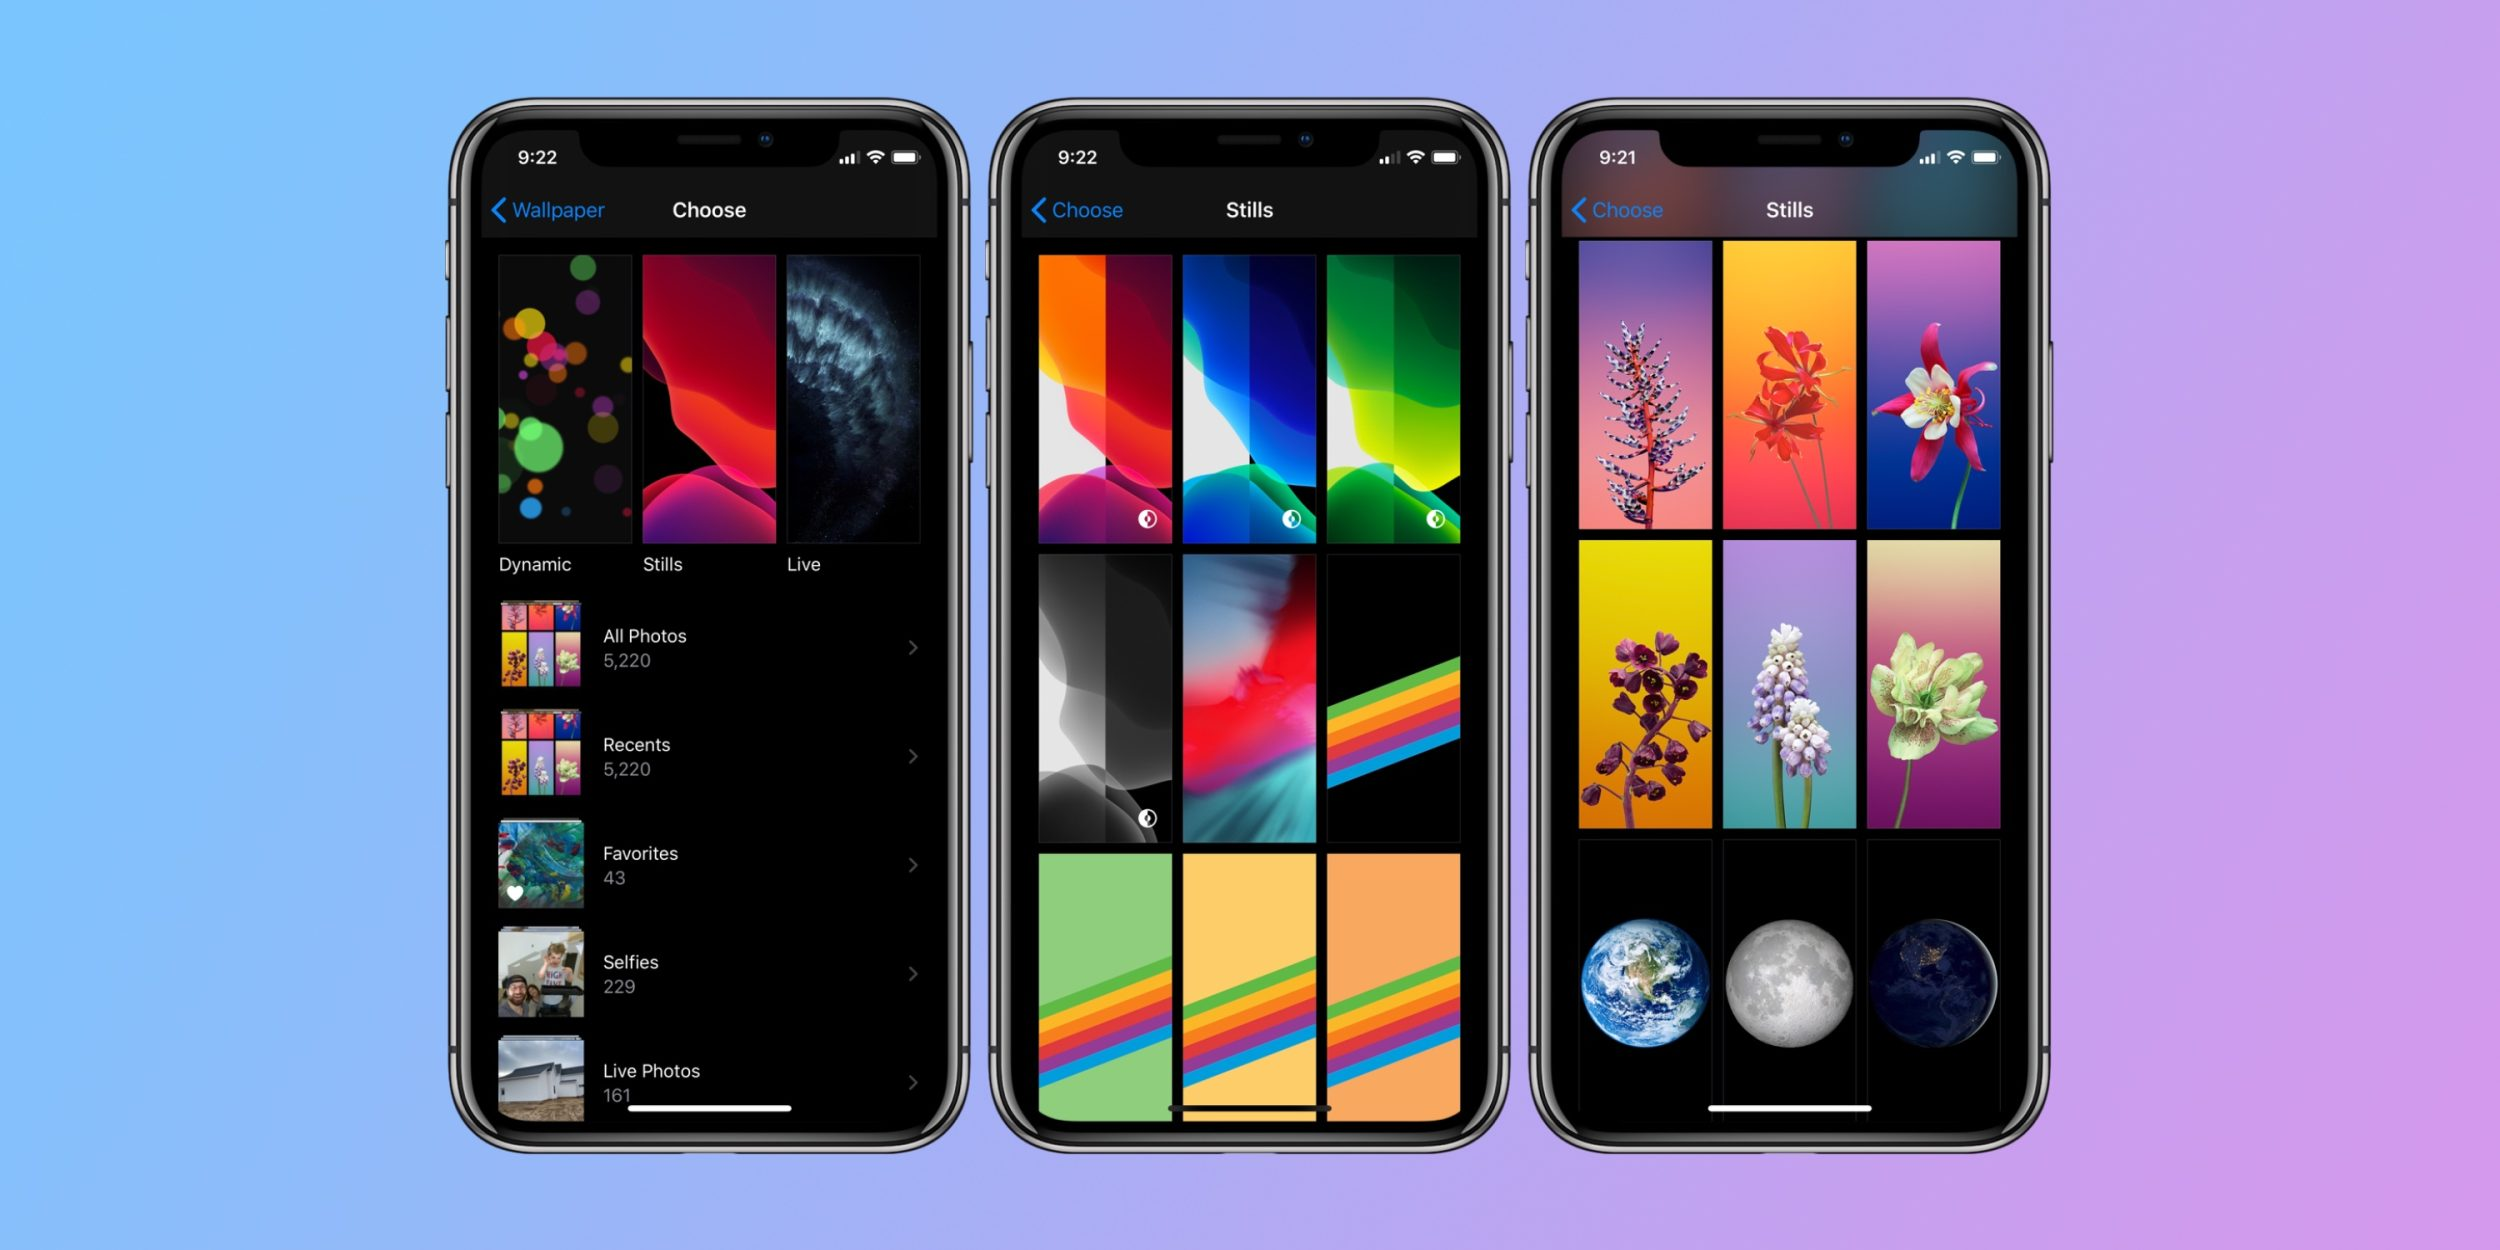 Ios 14 Home Screen Mouse Support Imessage Changes Wallpapers More Apple Tld